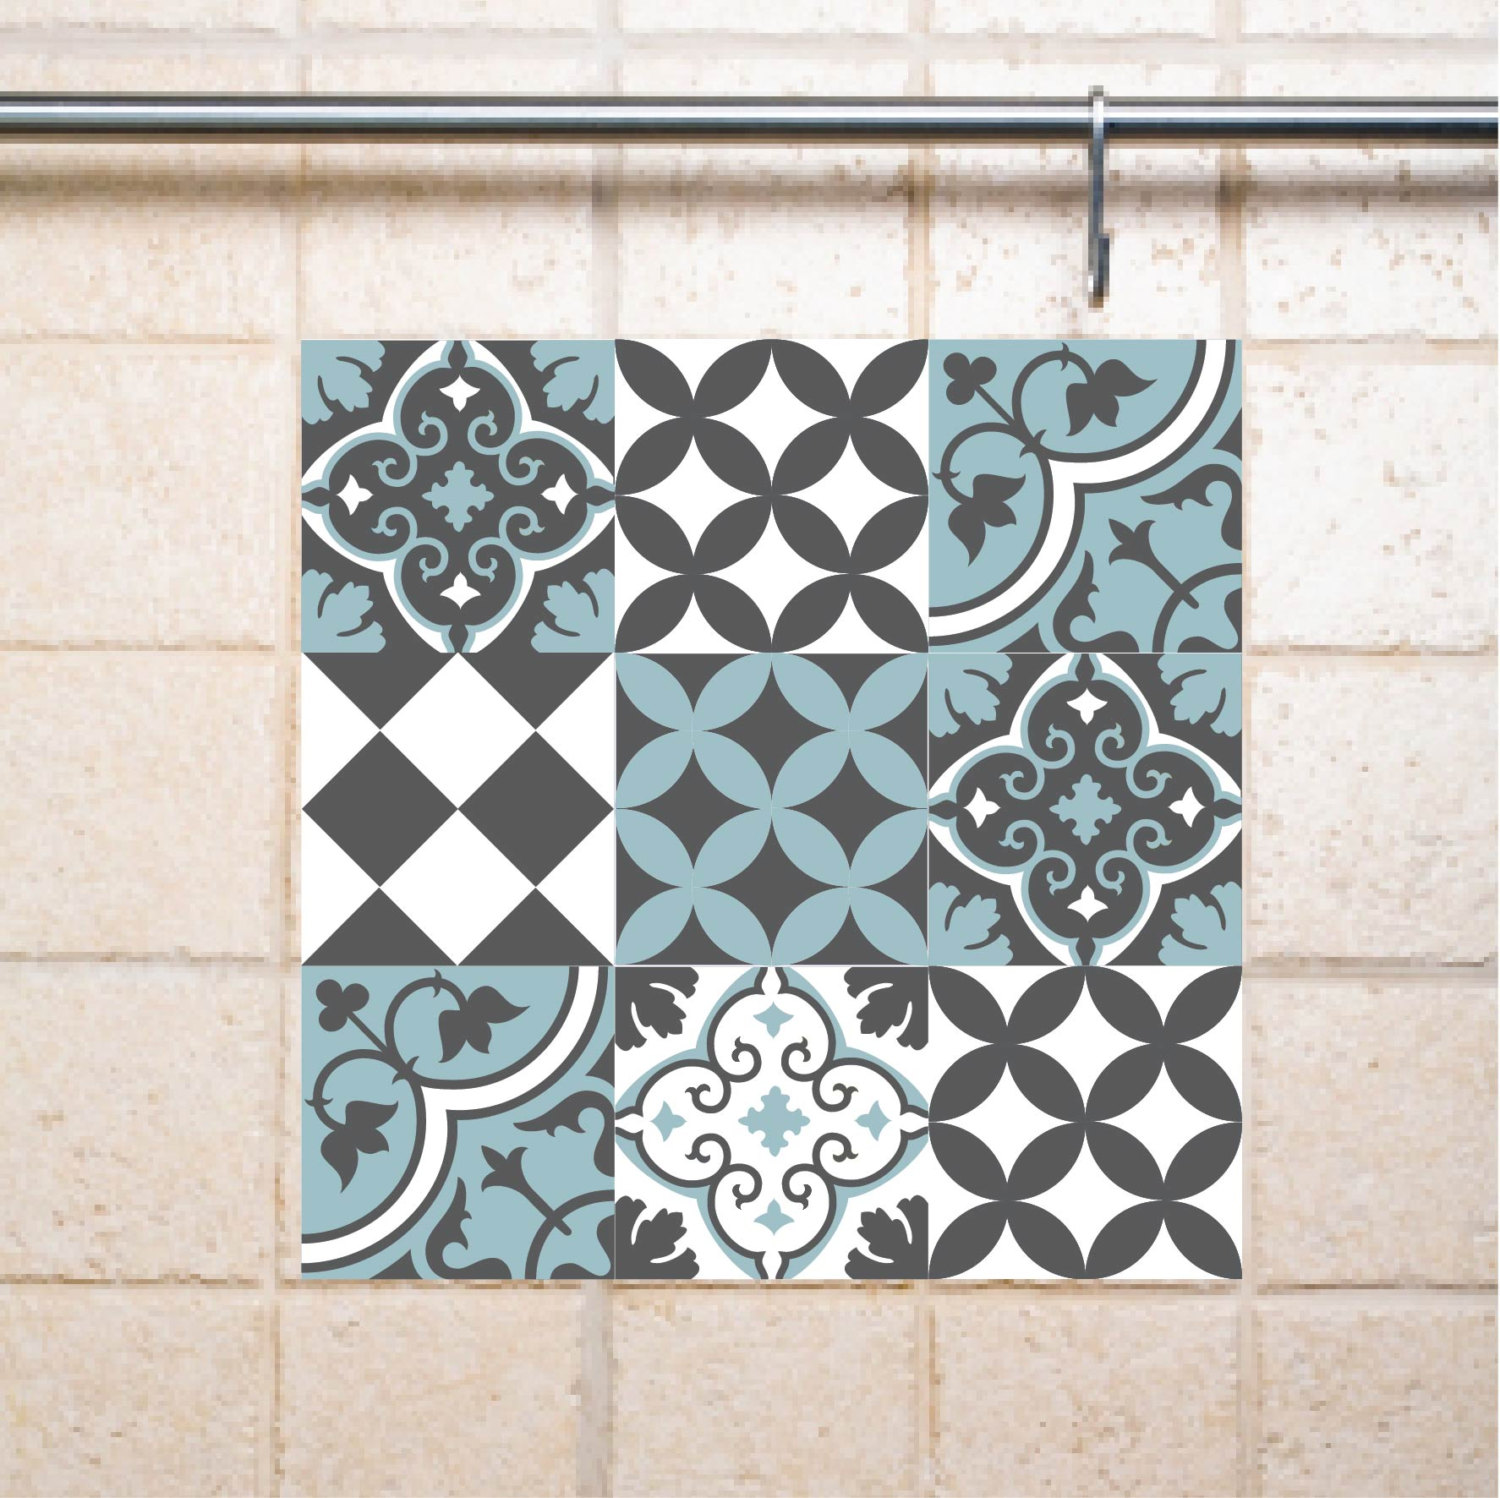 mix-tile-decals-kitchenbathroom-tiles-vinyl-floor-tiles-free-shipping-design-310-5897b1cb2.jpg